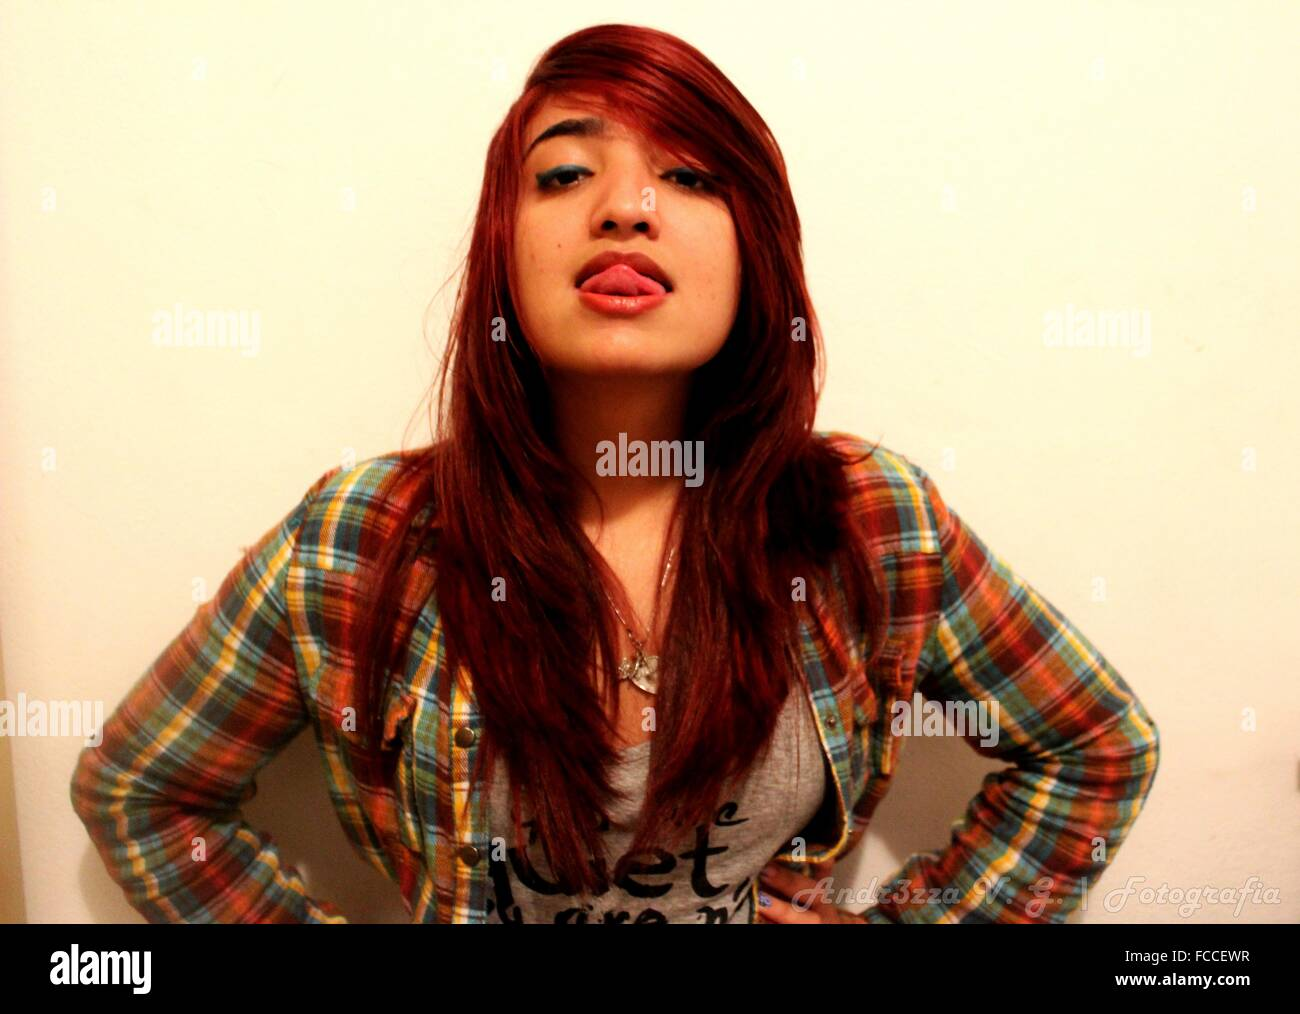 Portrait Of Young Woman Sticking Out Tongue Against White Background - Stock Image